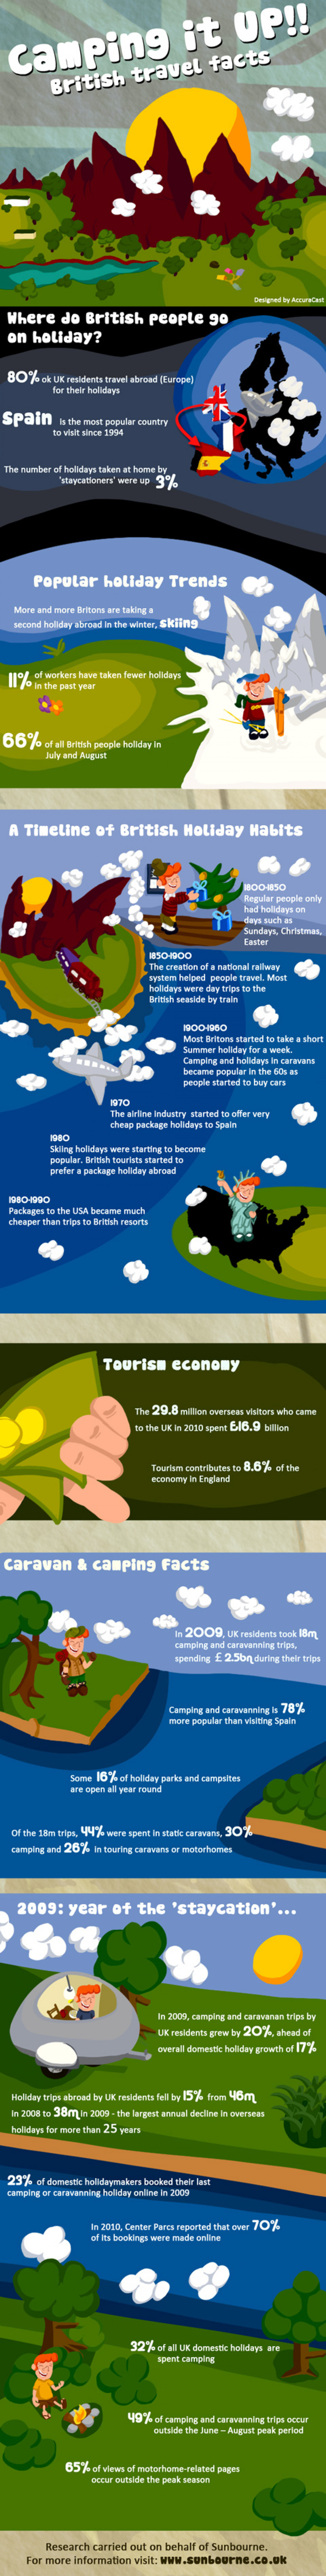 Camping it UP!! Infographic